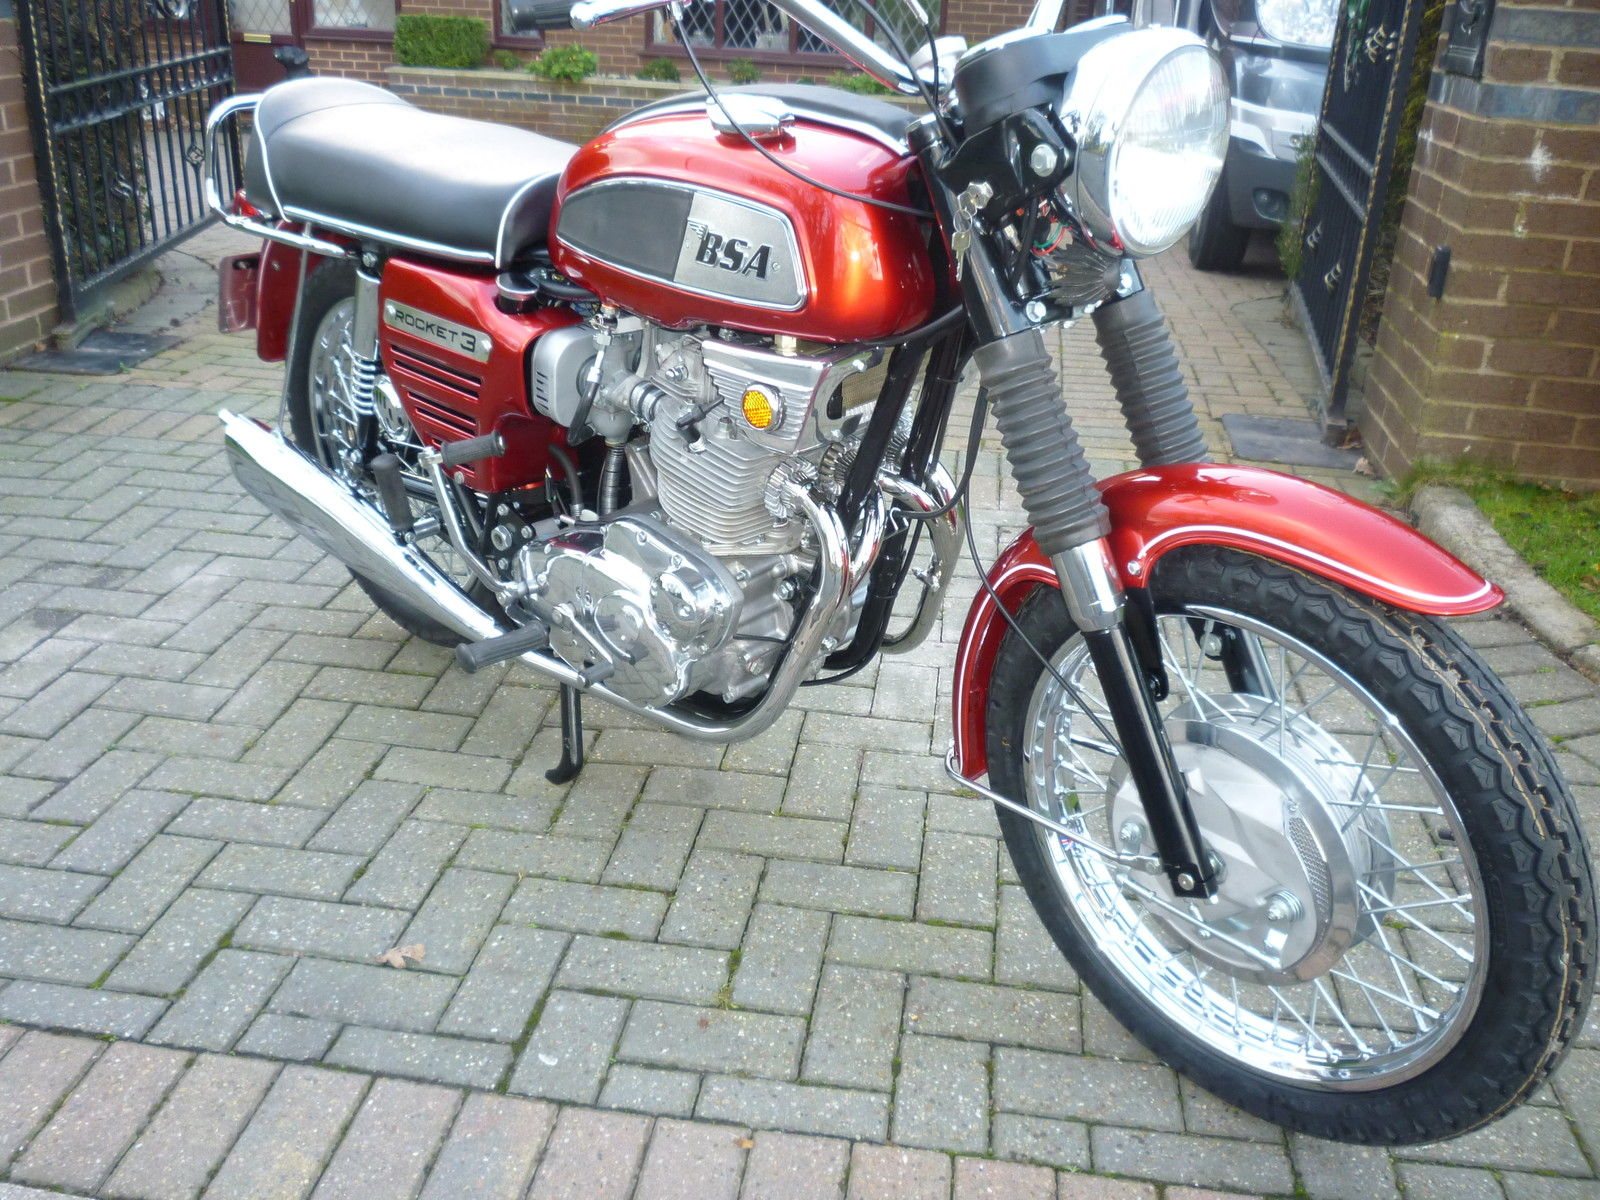 BSA Rocket 3 - 1969 - Exhaust System, Forks, Seat, Gas Tank and Knee Pads.